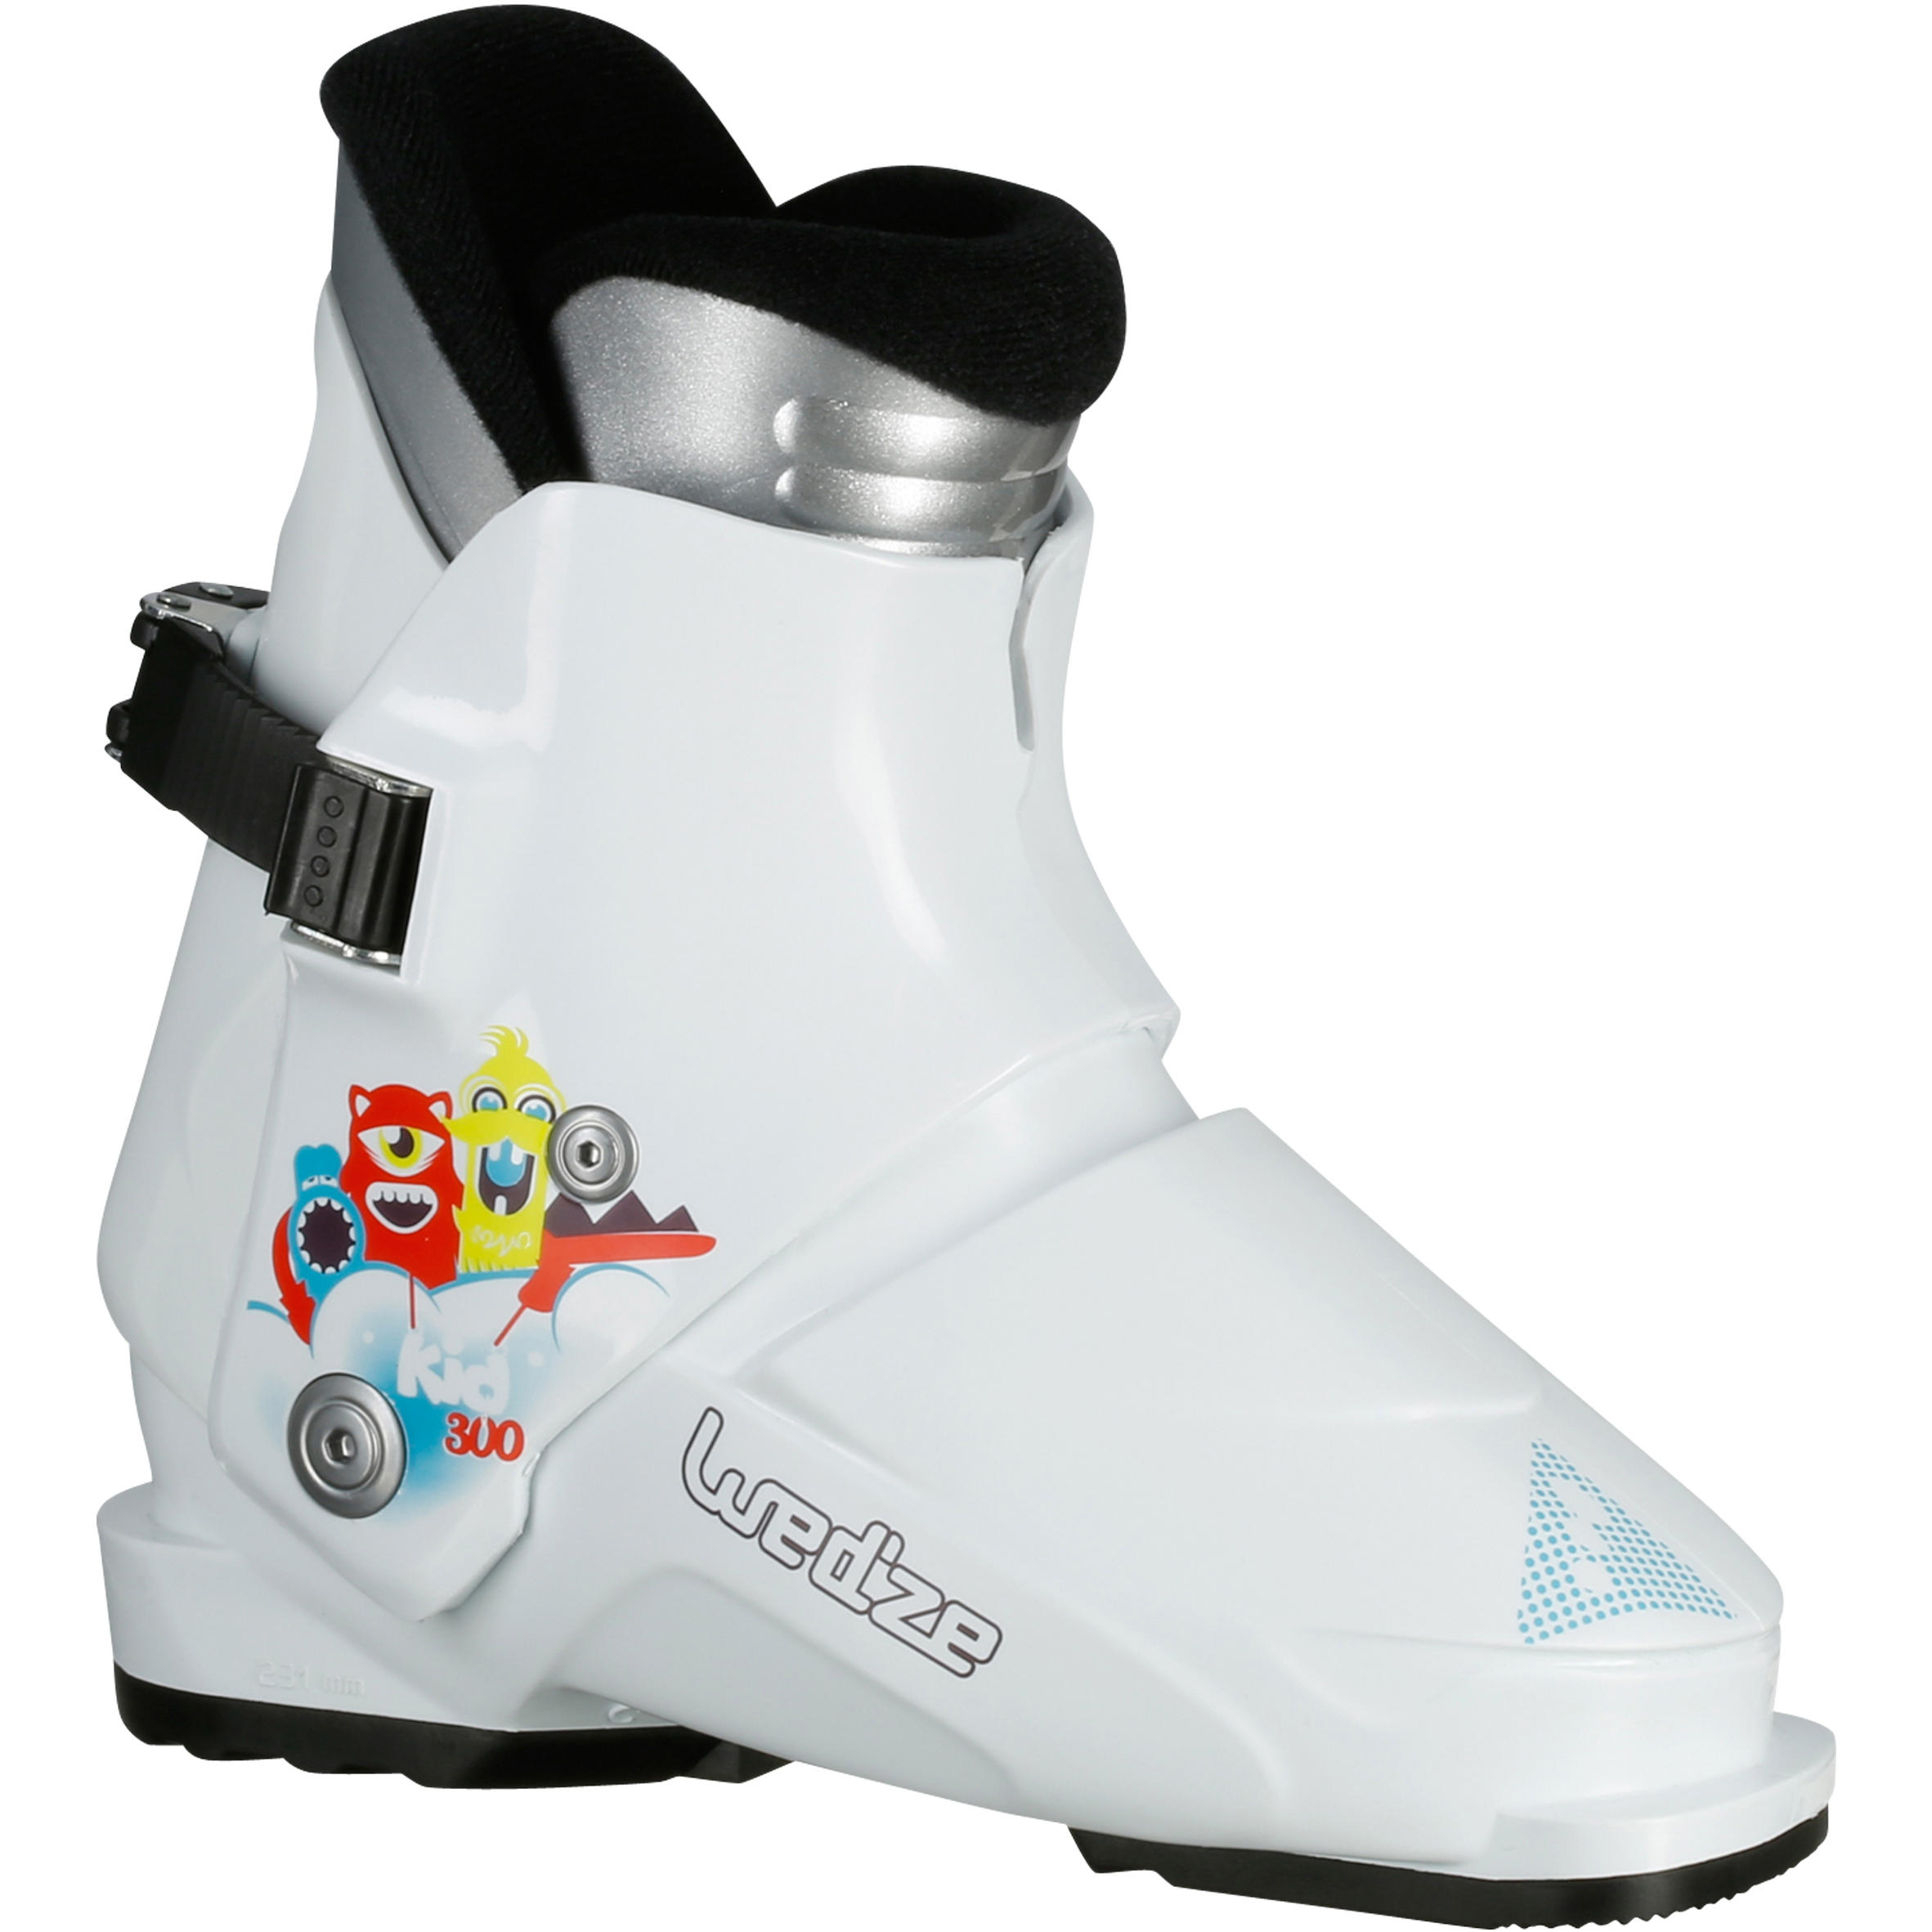 KID 300 CHILDREN'S SKI BOOTS - WHITE